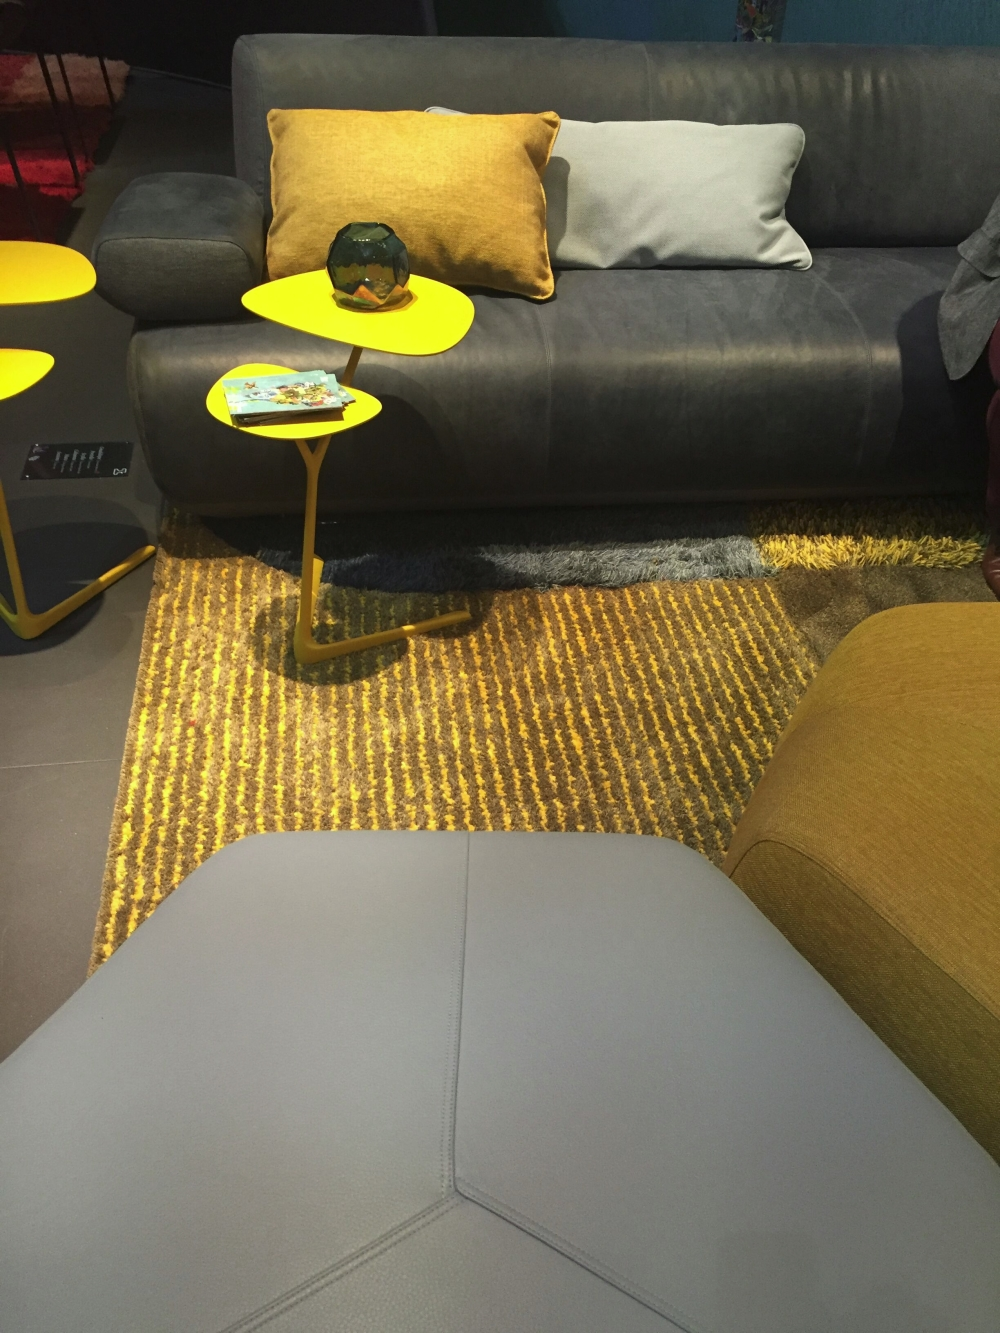 Yellow on gold creates a warm atmosphere